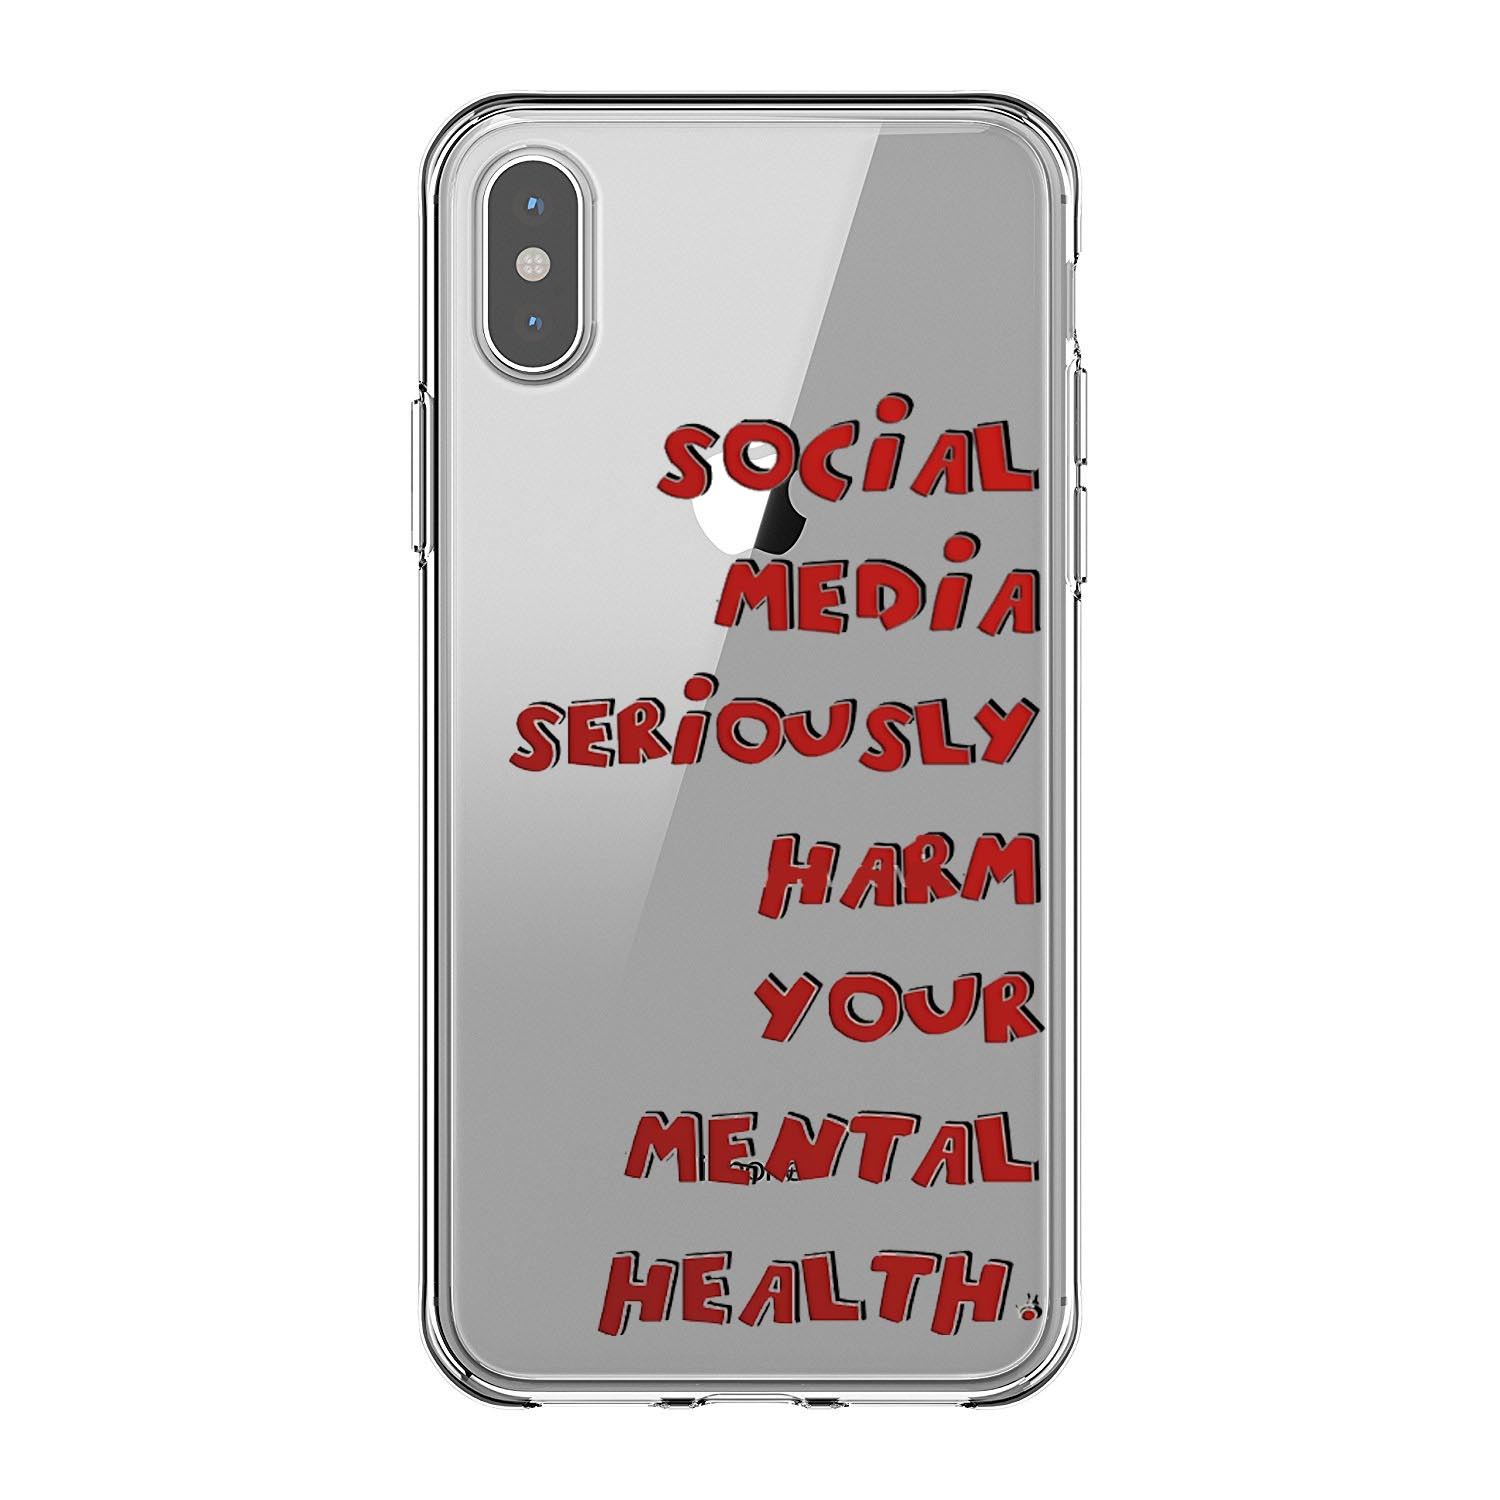 social media seriously harms your mental health soft Silicone clear cover phone case for iPhone XR XS Max 6 7 8 plus 5 5s 6s se in Half wrapped Cases from Cellphones Telecommunications